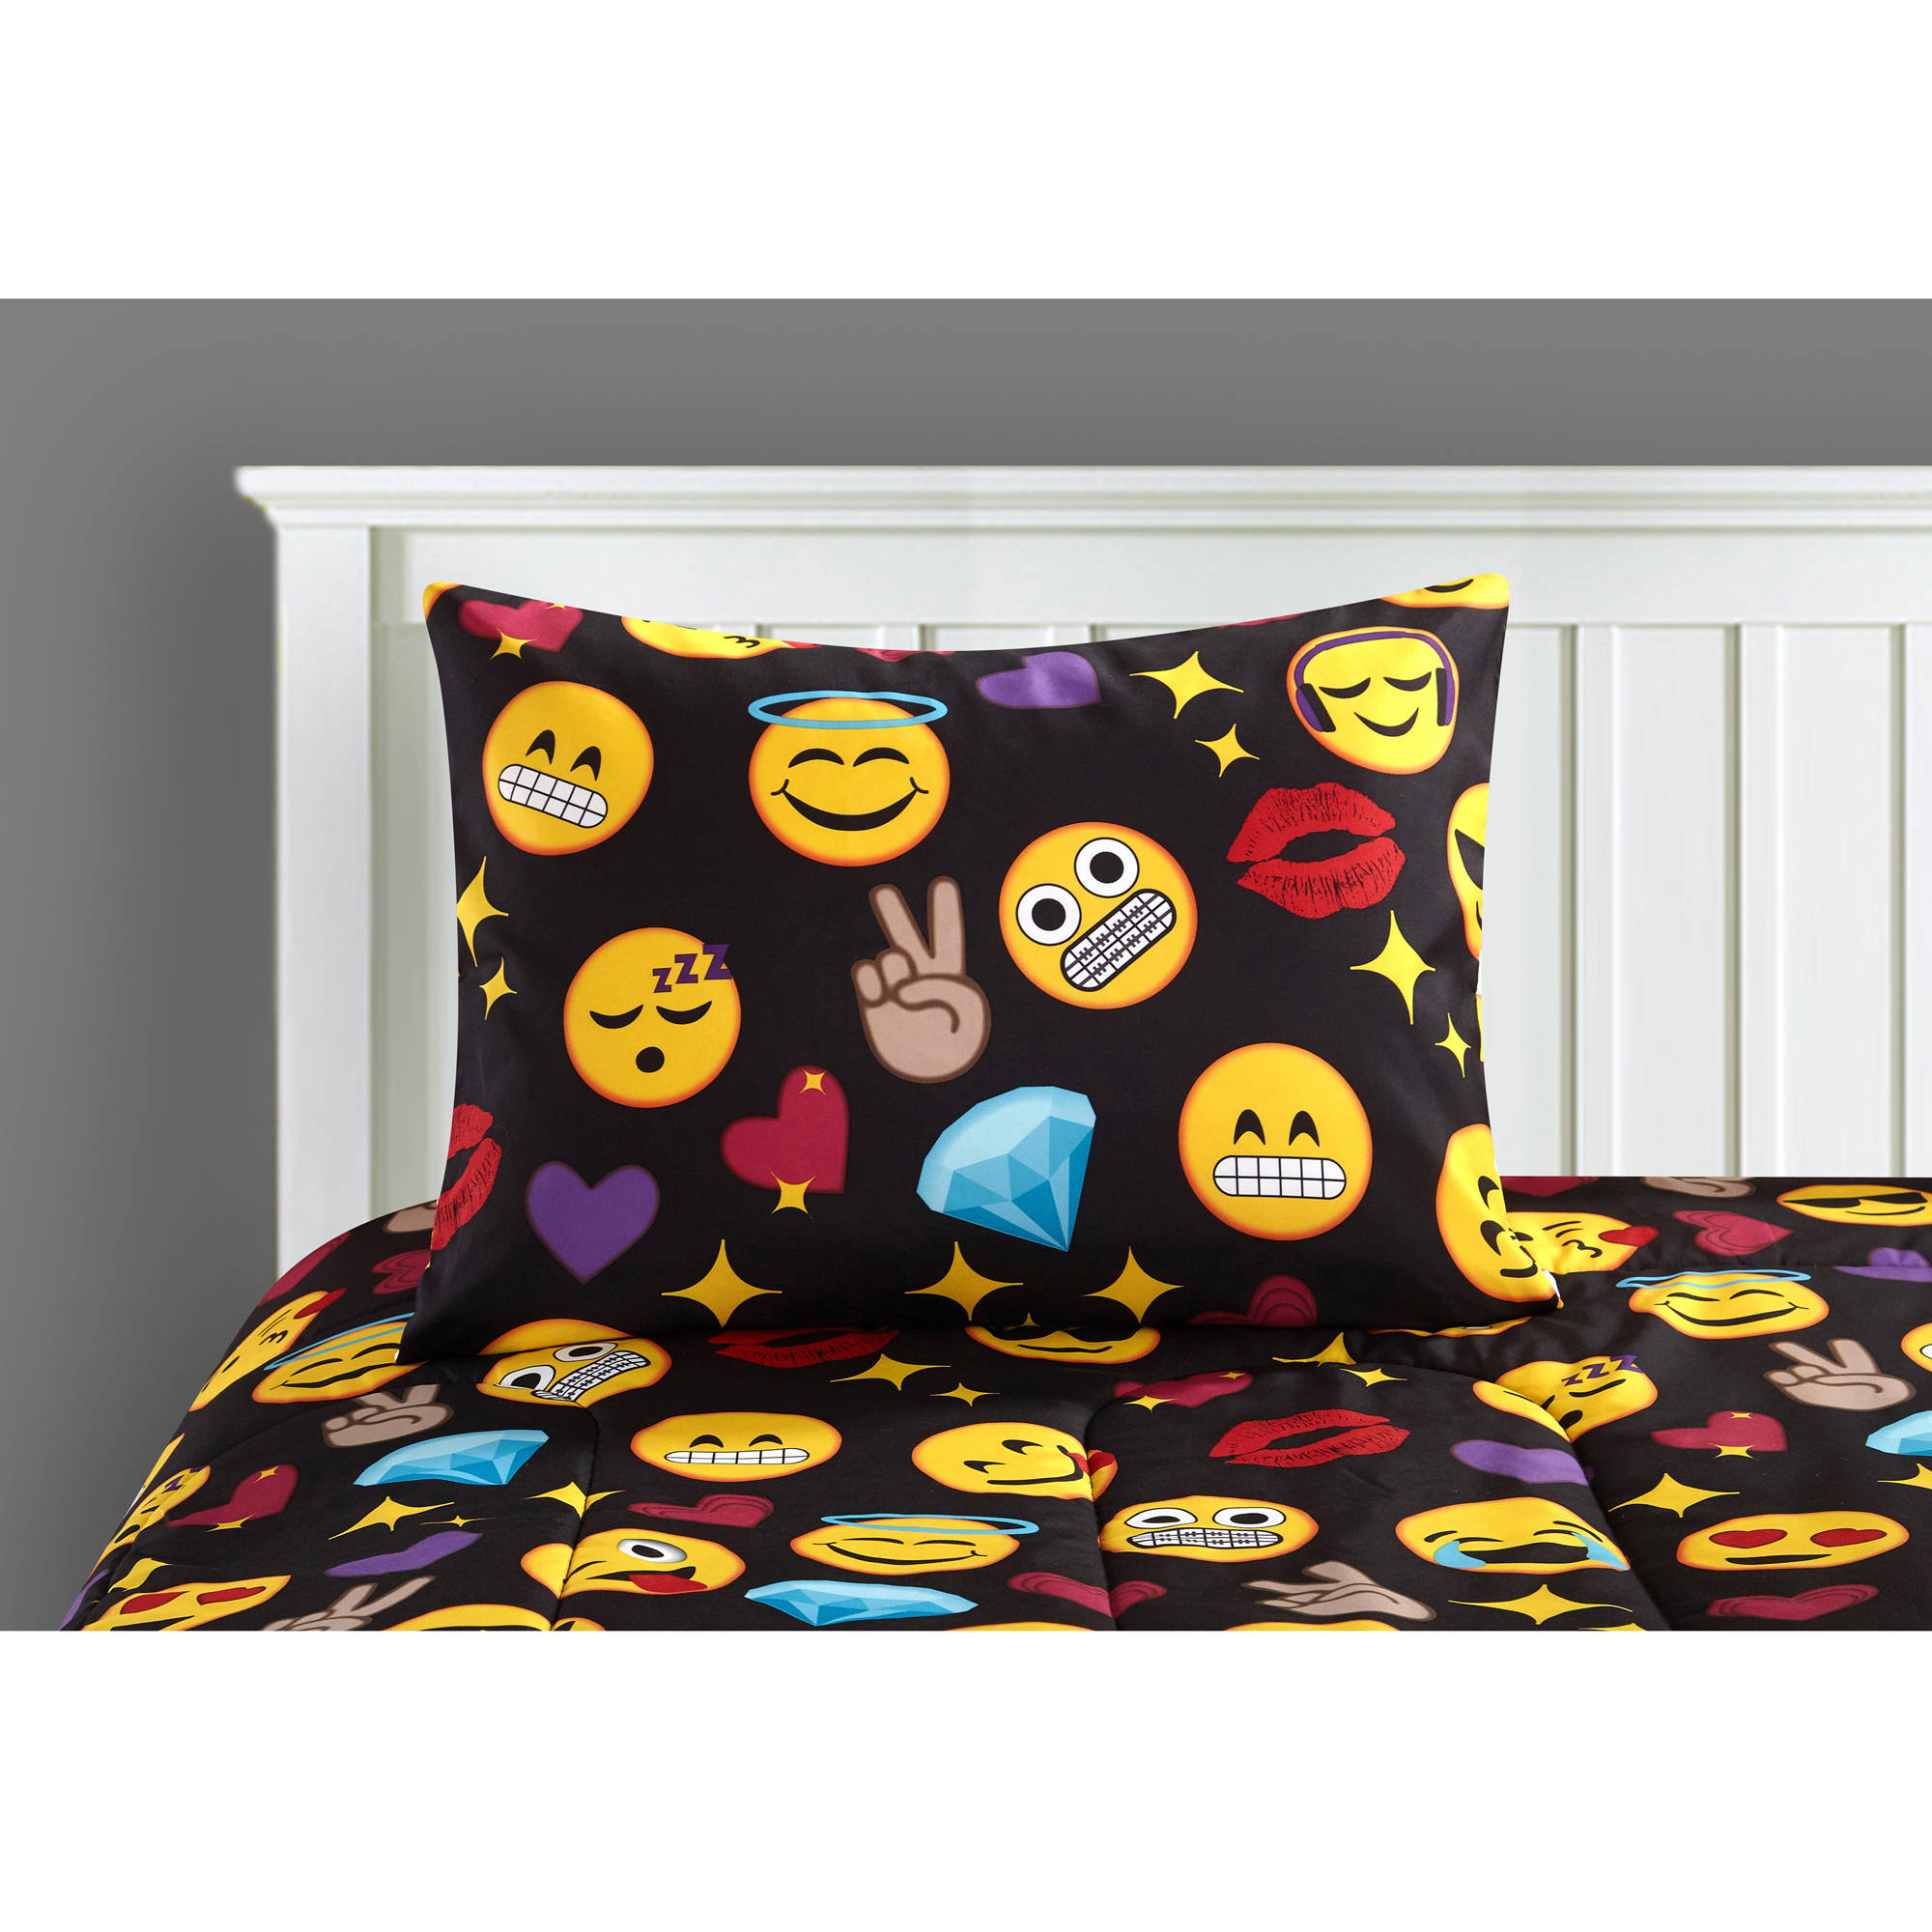 Emoji Bedding Set Queen Bed In A Bag Kids Teen Bedroom